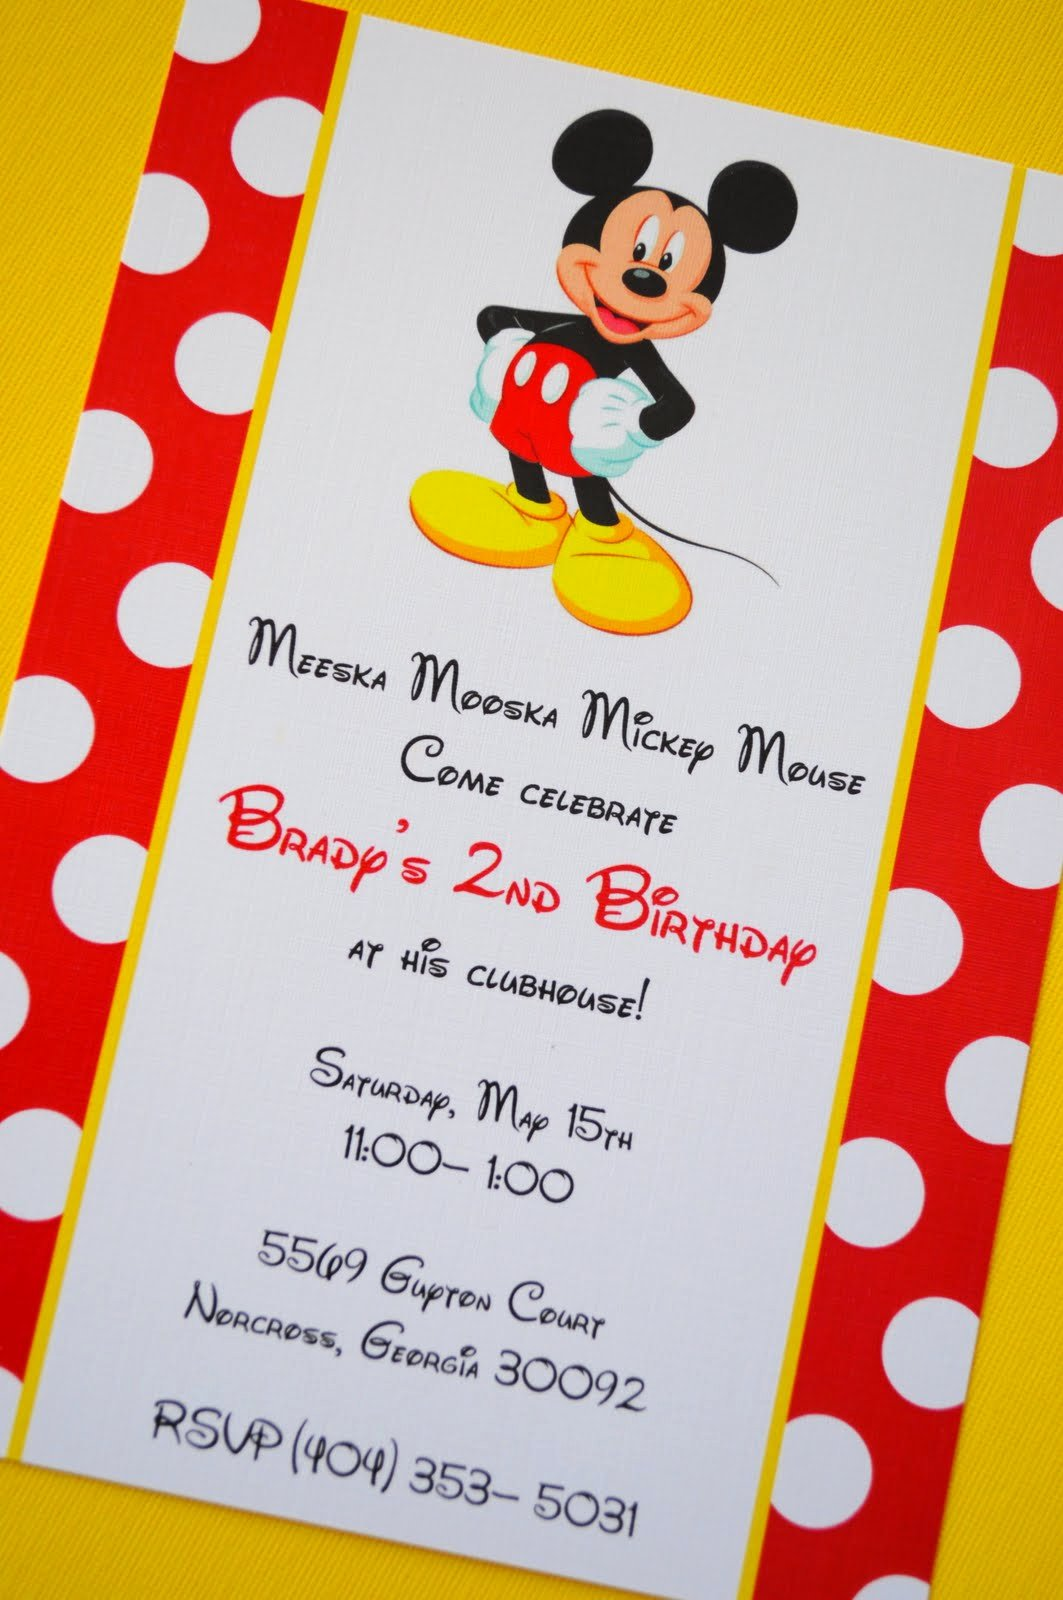 Mickey Mouse Birthday Invites Awesome Mickey Mouse Birthday Invitations Ideas and Template